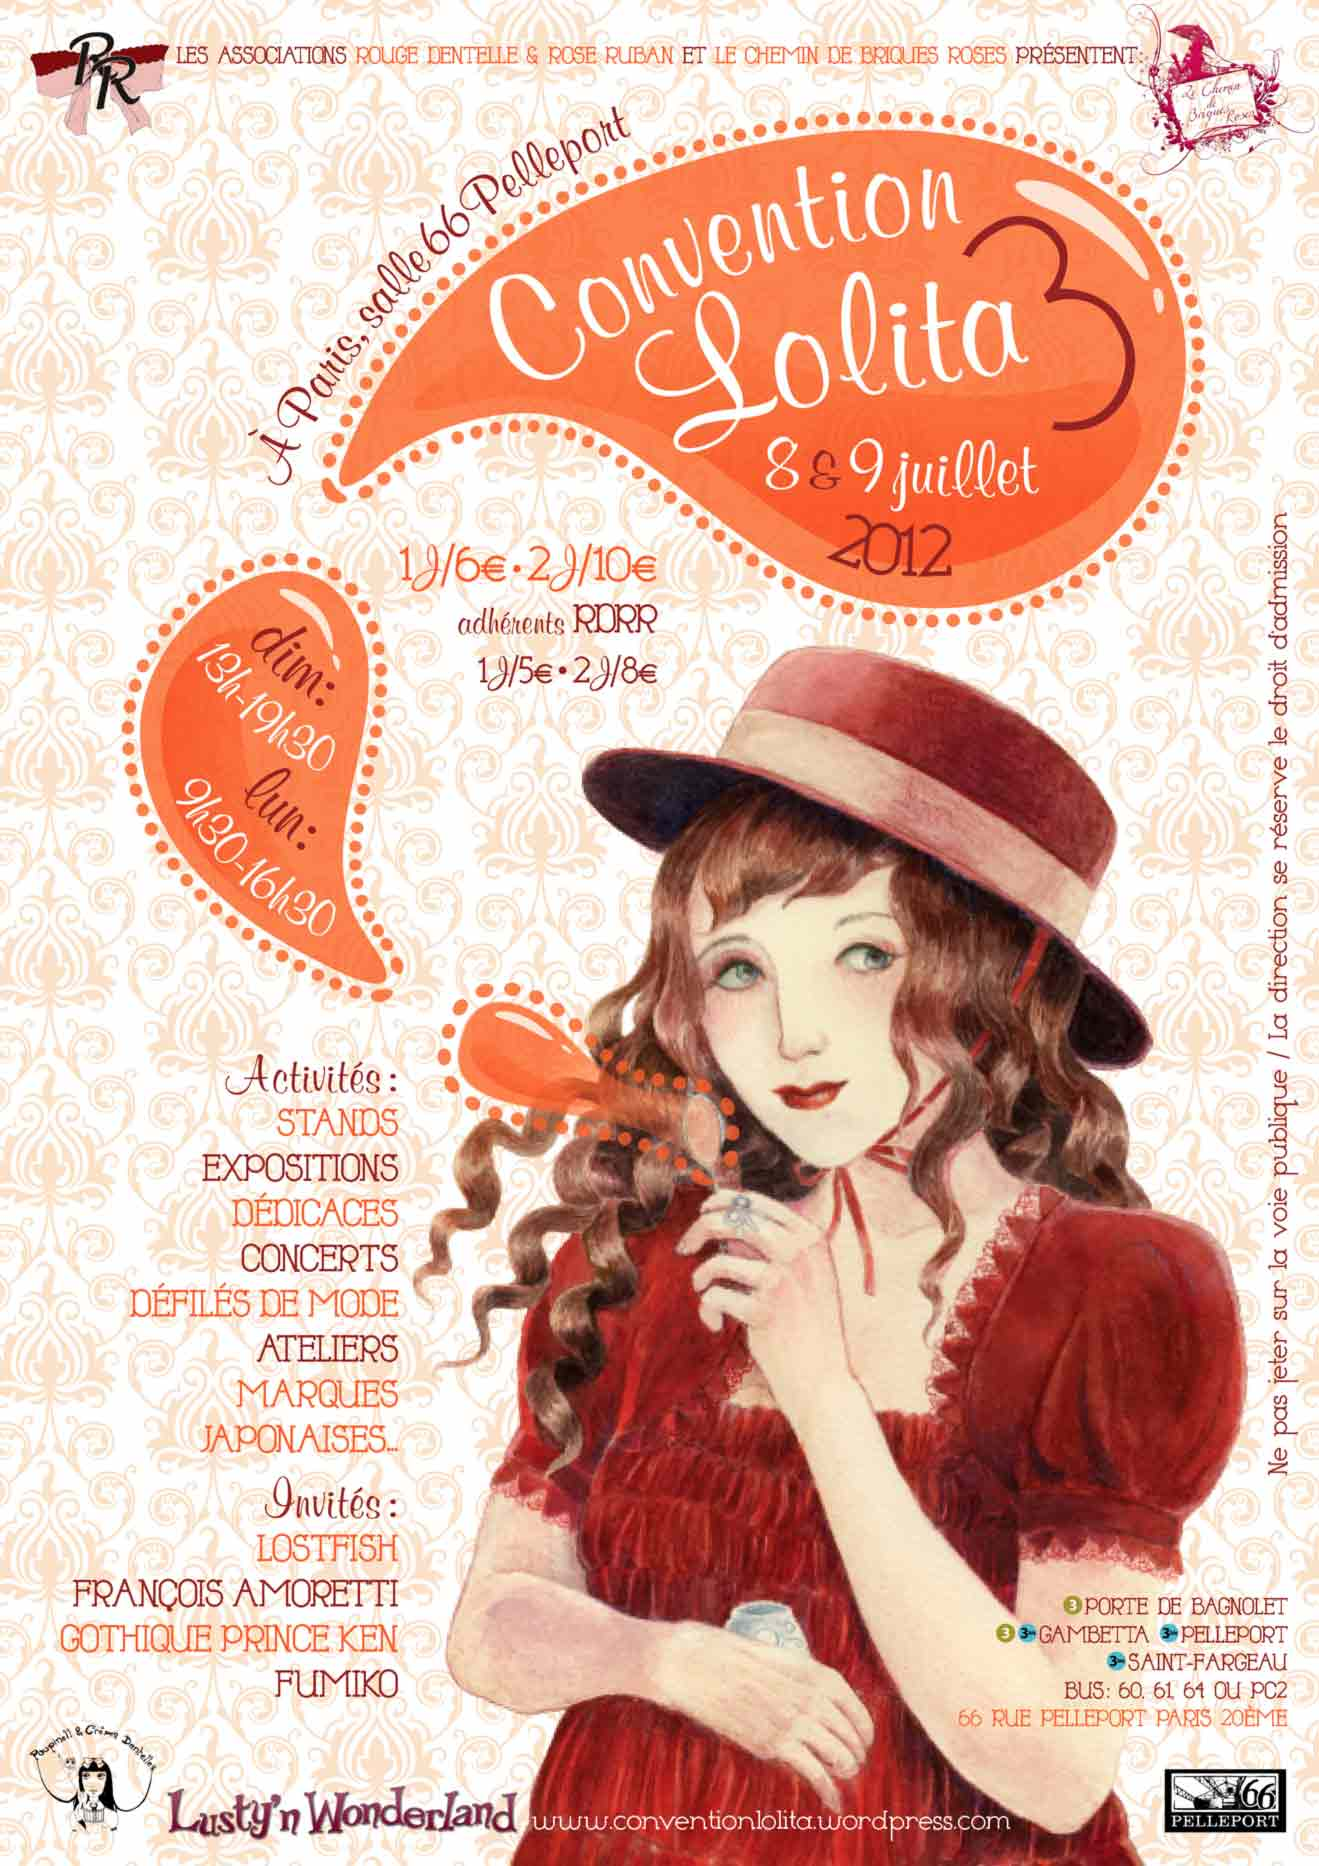 Poster for the 3rd edition of the Convention Lolita in 2012 held in Paris.